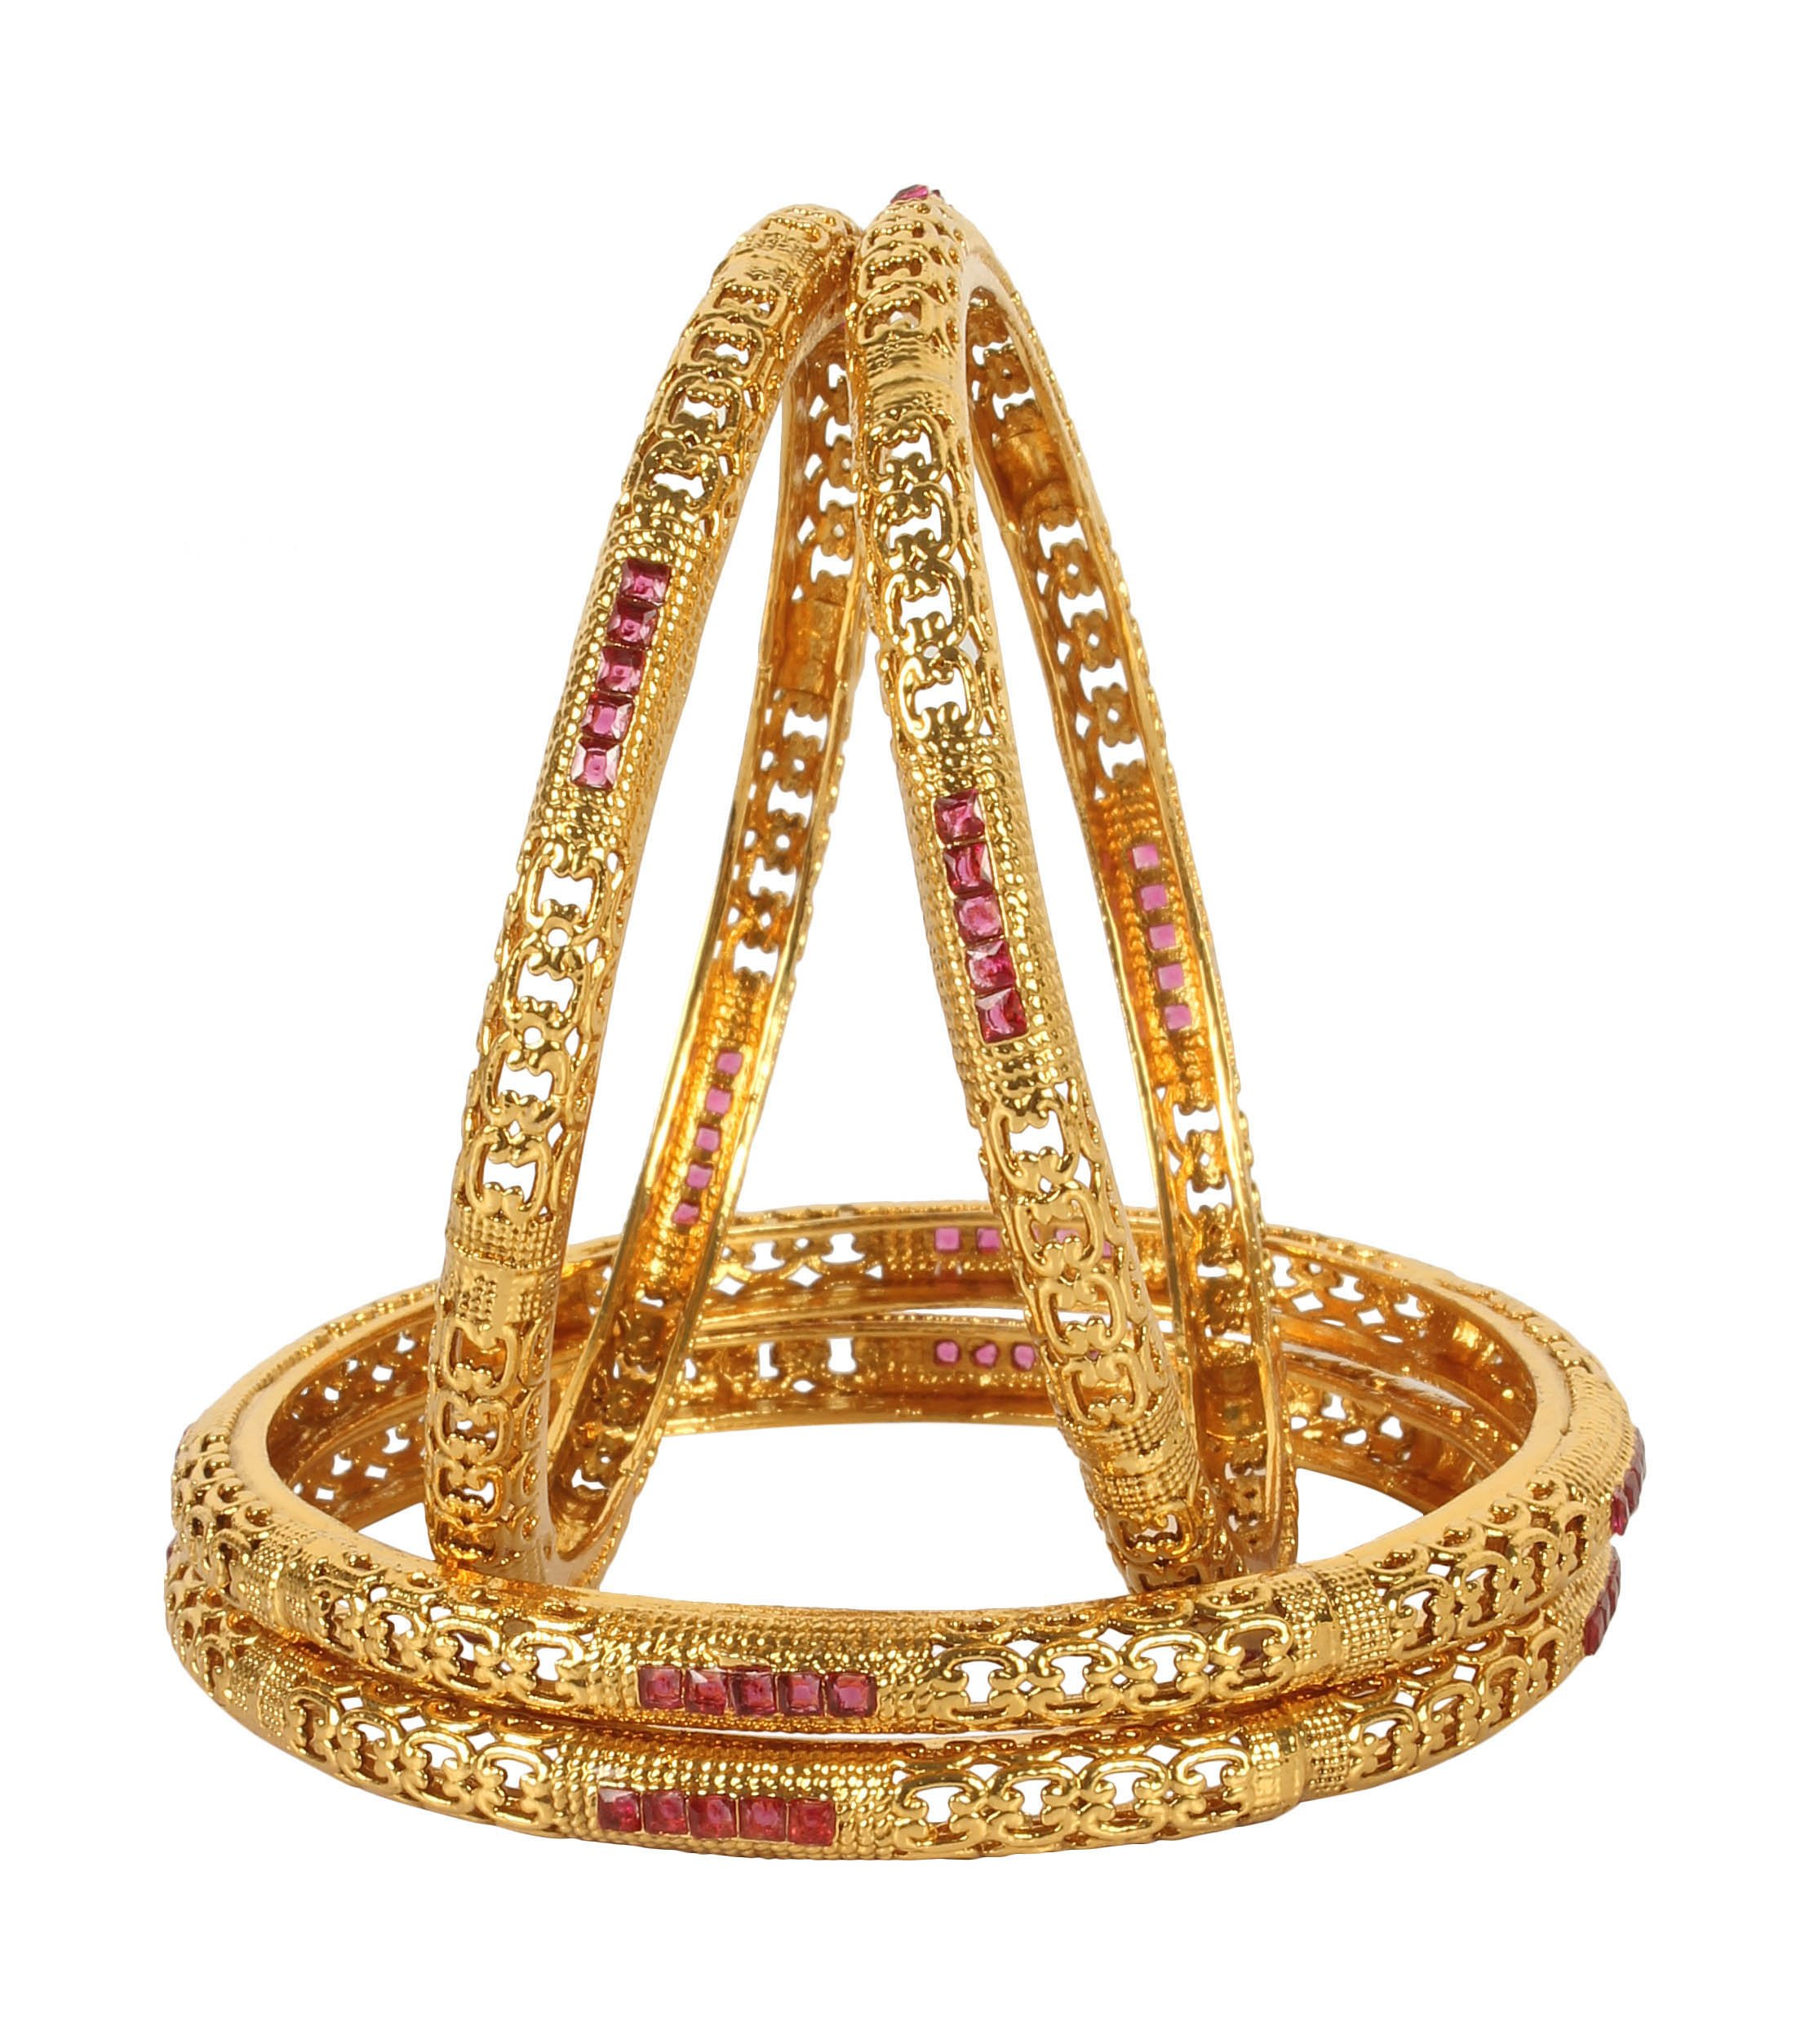 MUCH-MORE Unique Style Gold Tone Polki Indian Bangles Traditional Jewelry (339, 2.8)